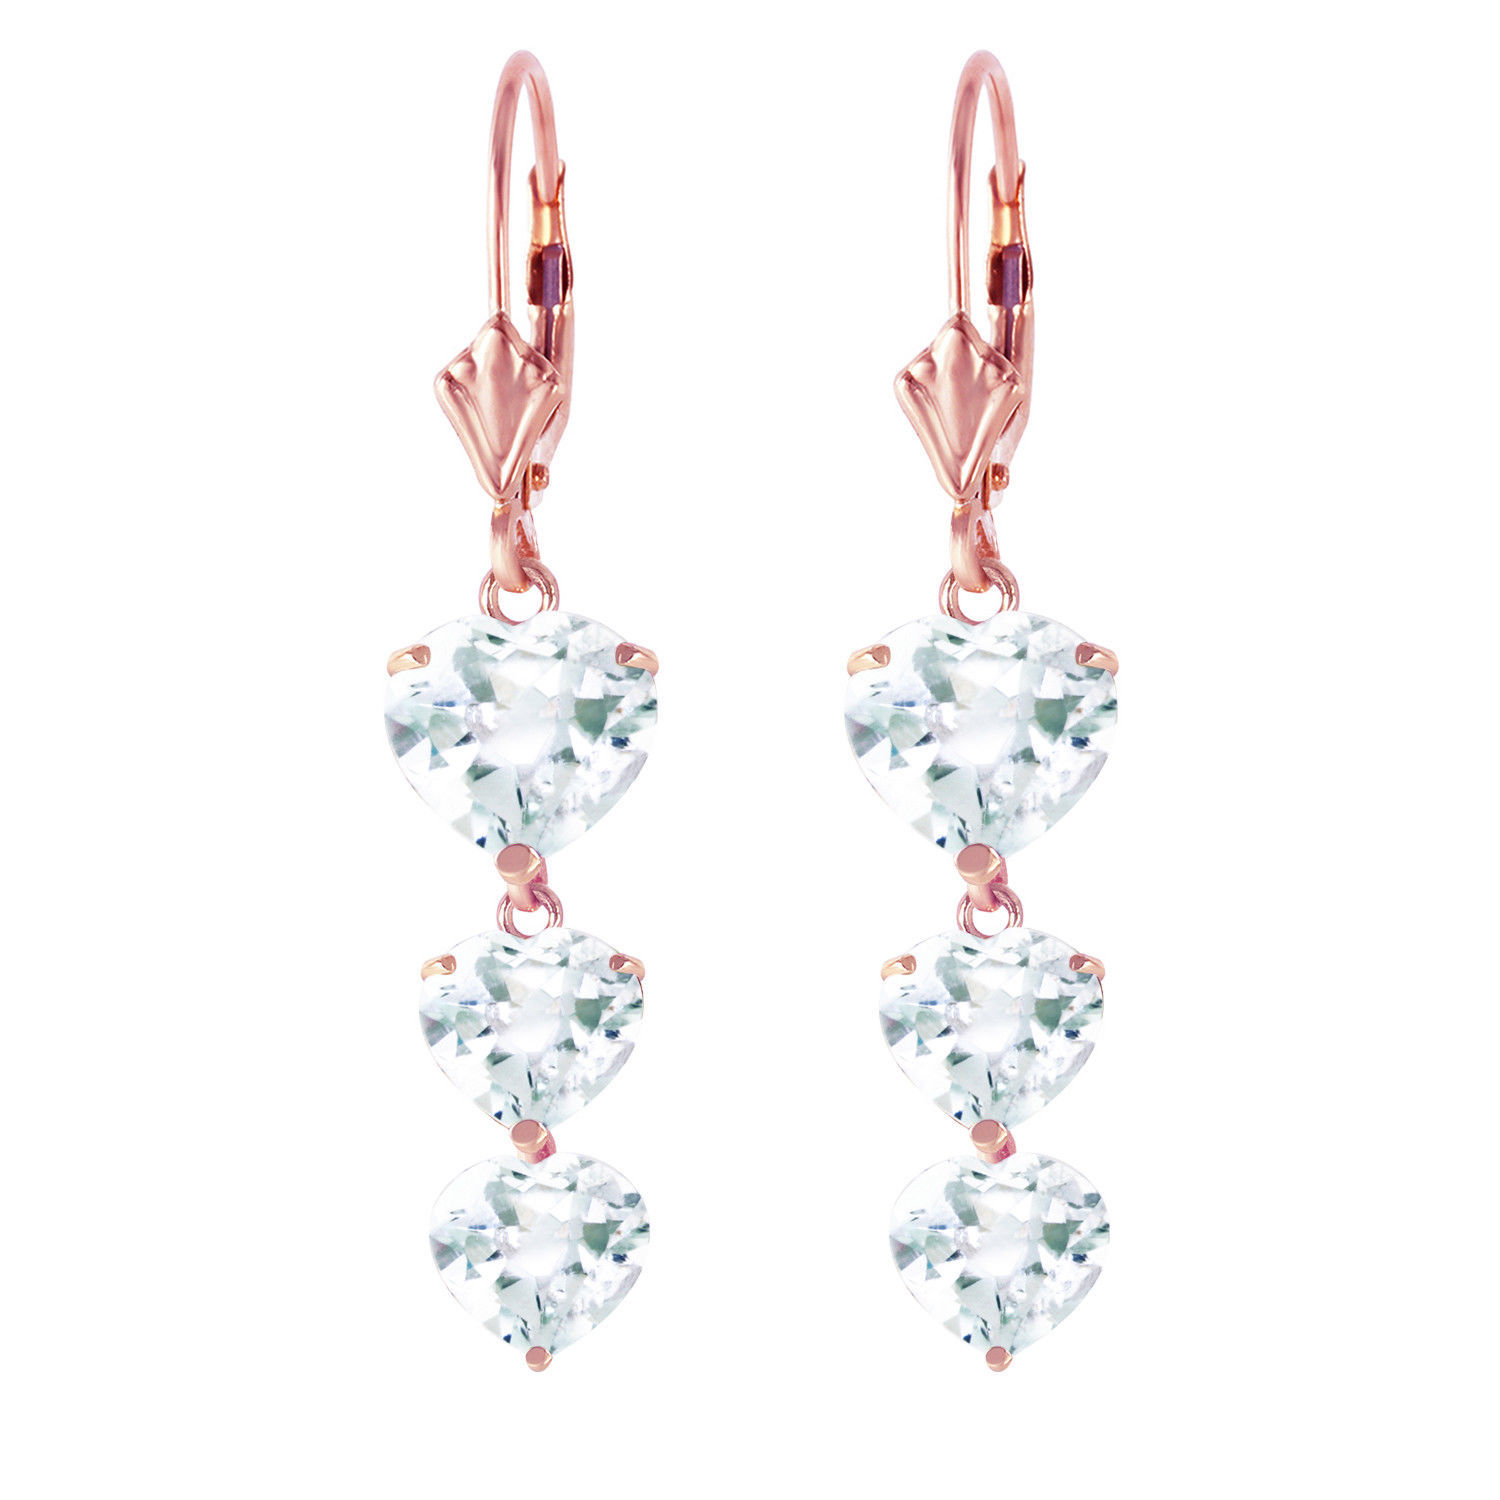 Primary image for 14K Solid Rose Gold Women's Gorgeous Chandelier Fashion Earrings w/ Aquamarines